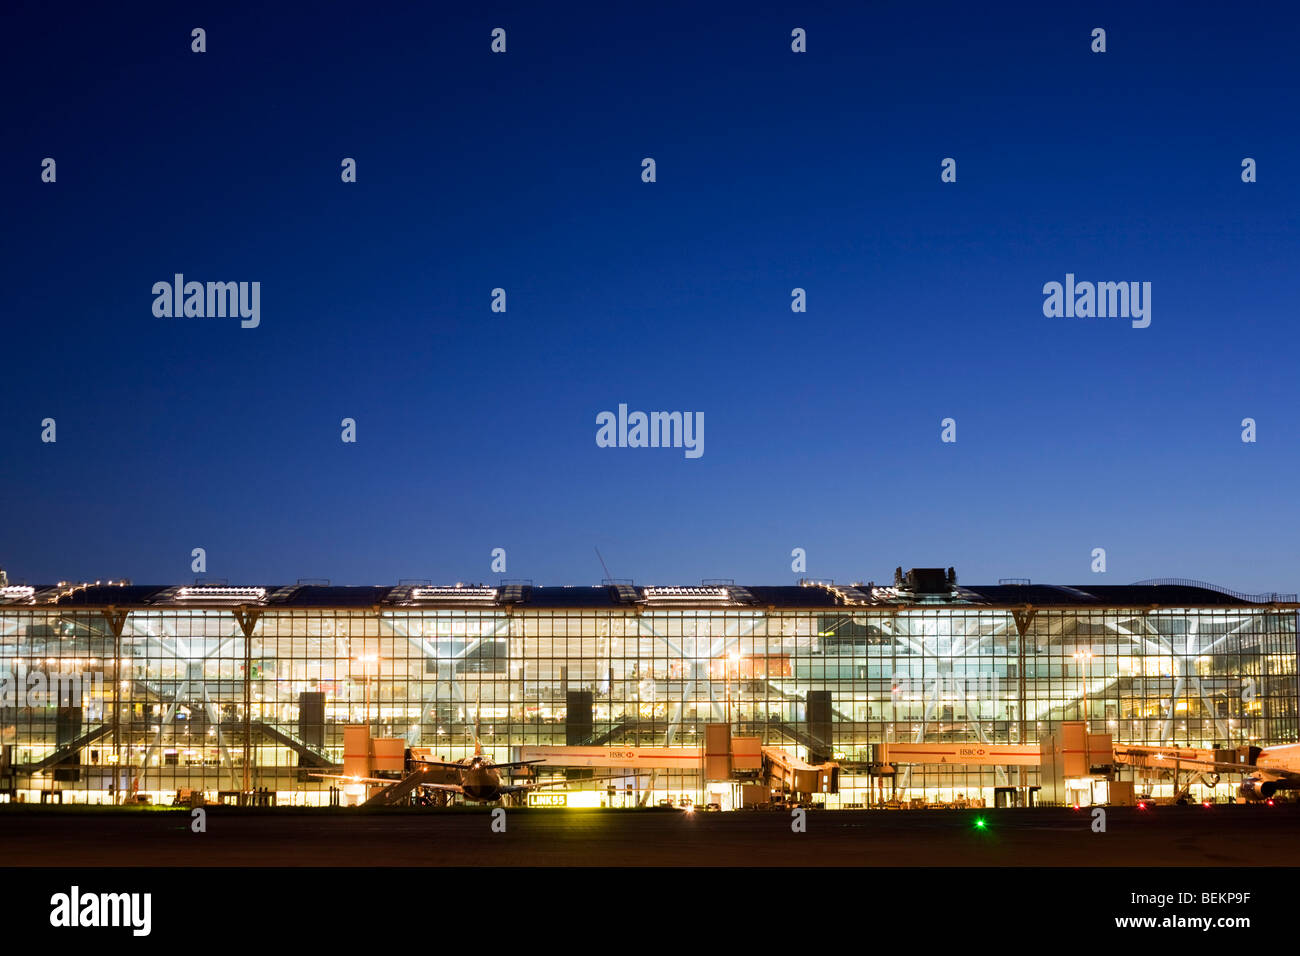 An wide exterior early evening view of Heathrow Airport's Terminal 5 building in West London. - Stock Image